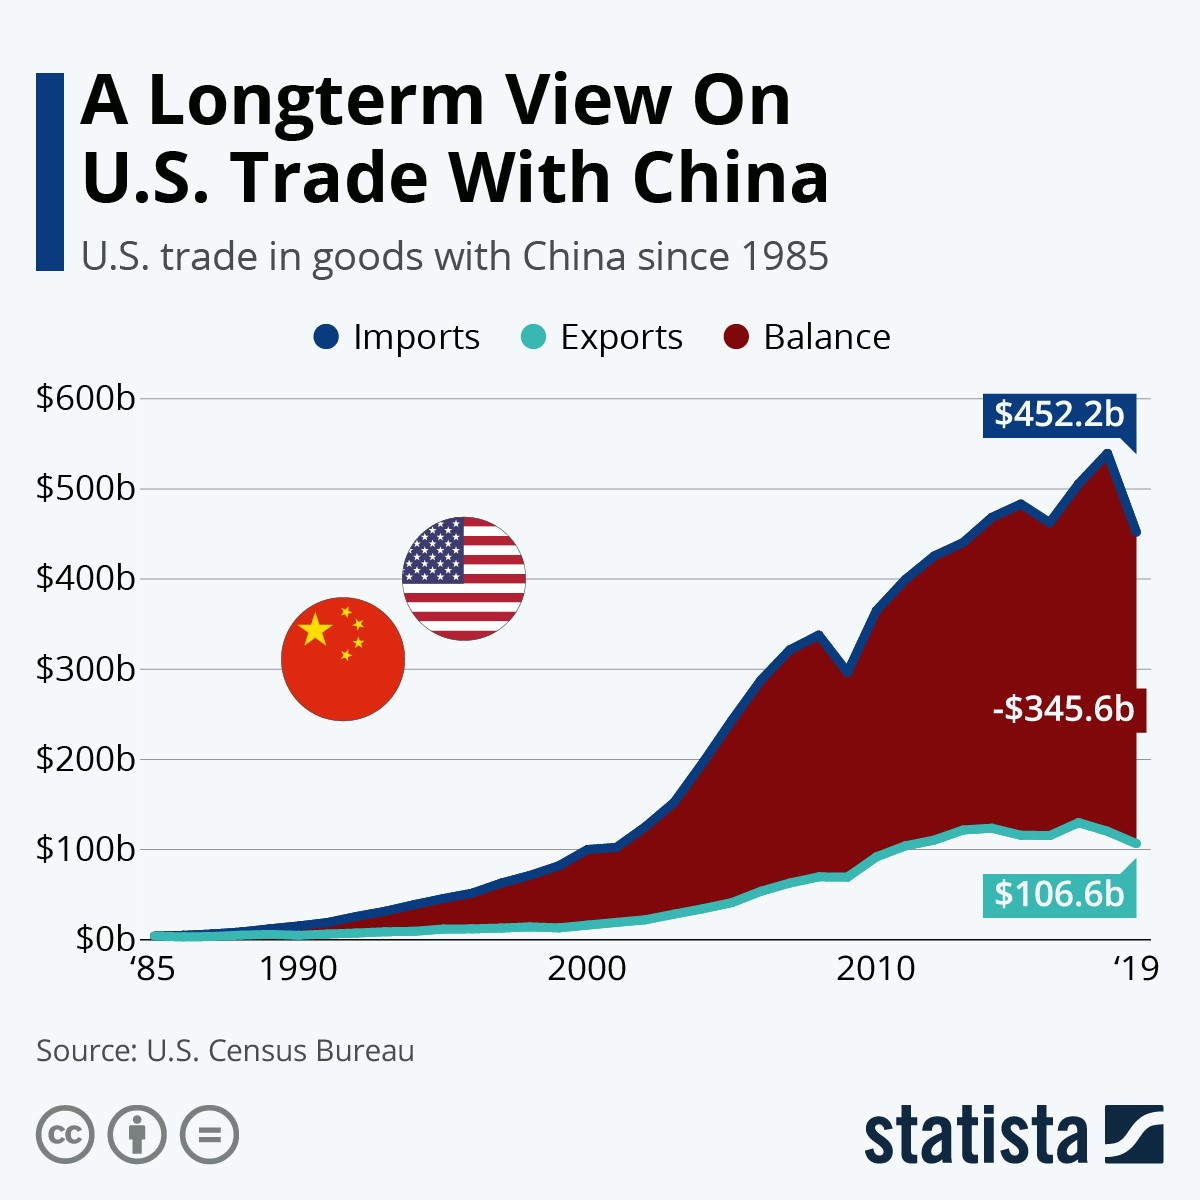 chart view on US trade with China 2019